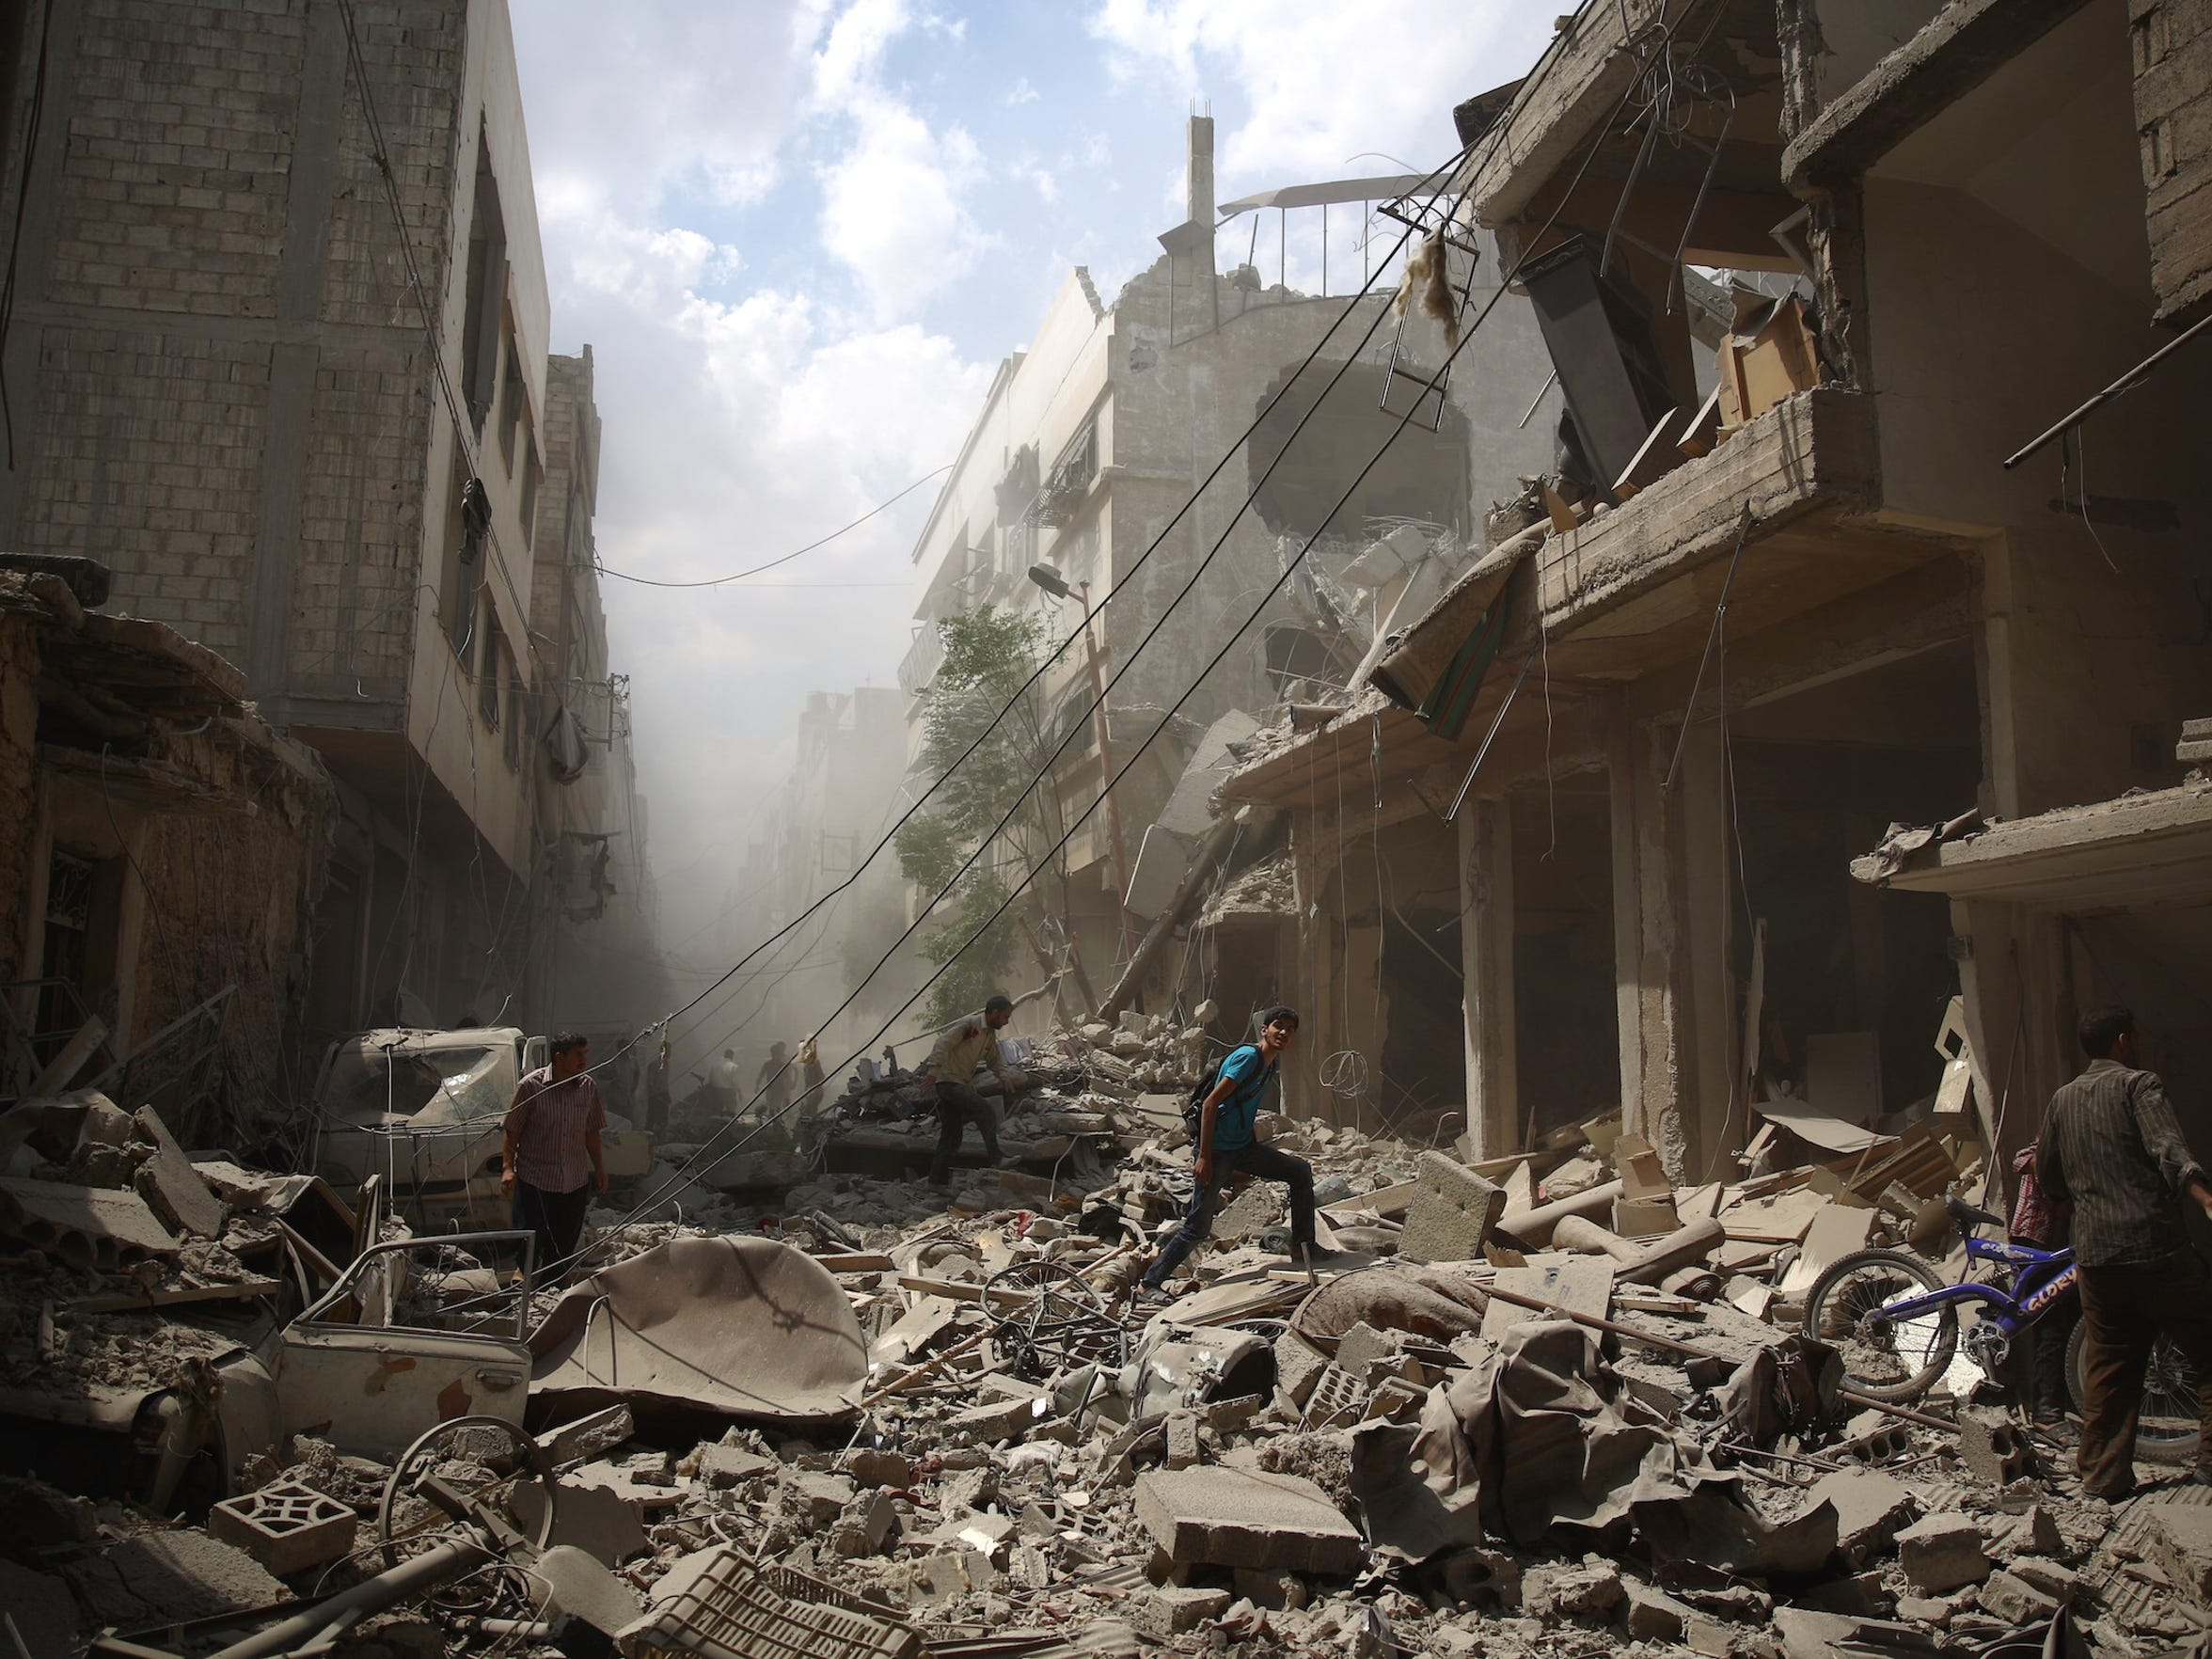 Syrians walk amid the rubble of destroyed buildings following reported air strikes by regime forces in the rebel-held area of Douma, east of the capital Damascus, on Aug. 30, 2015.